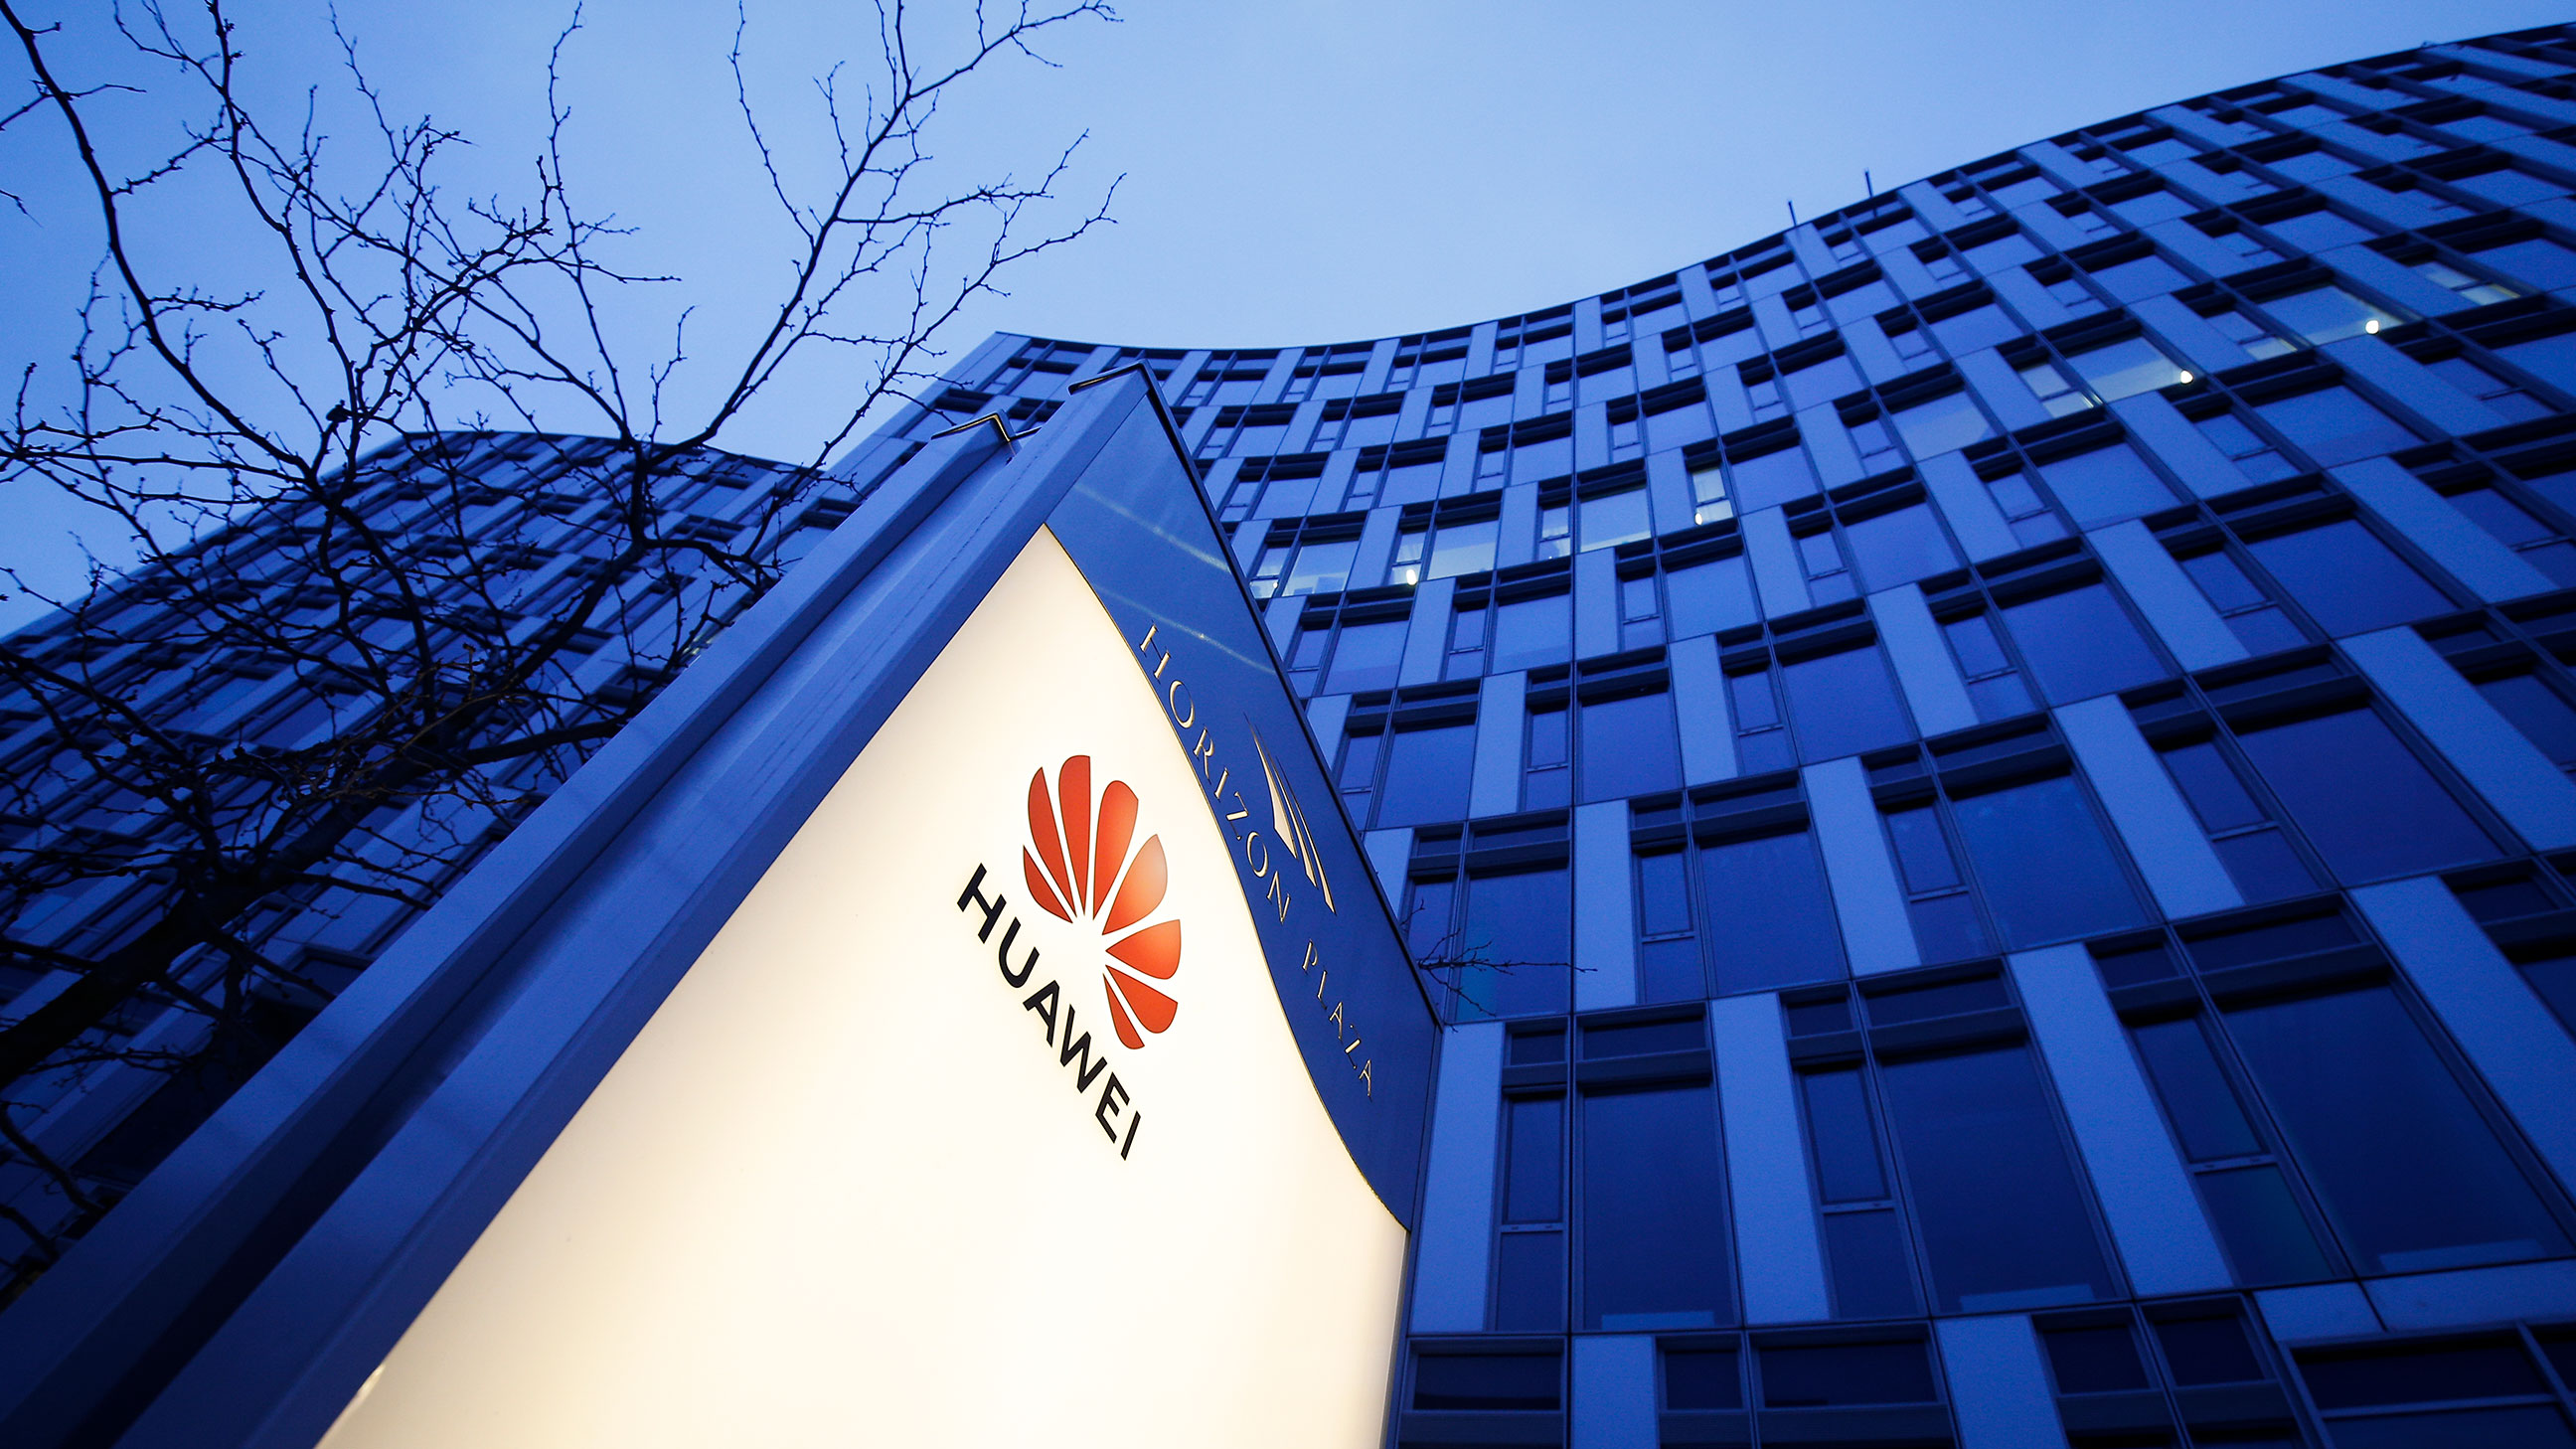 Huawei sees a 'difficult year' ahead as Washington keeps up pressure